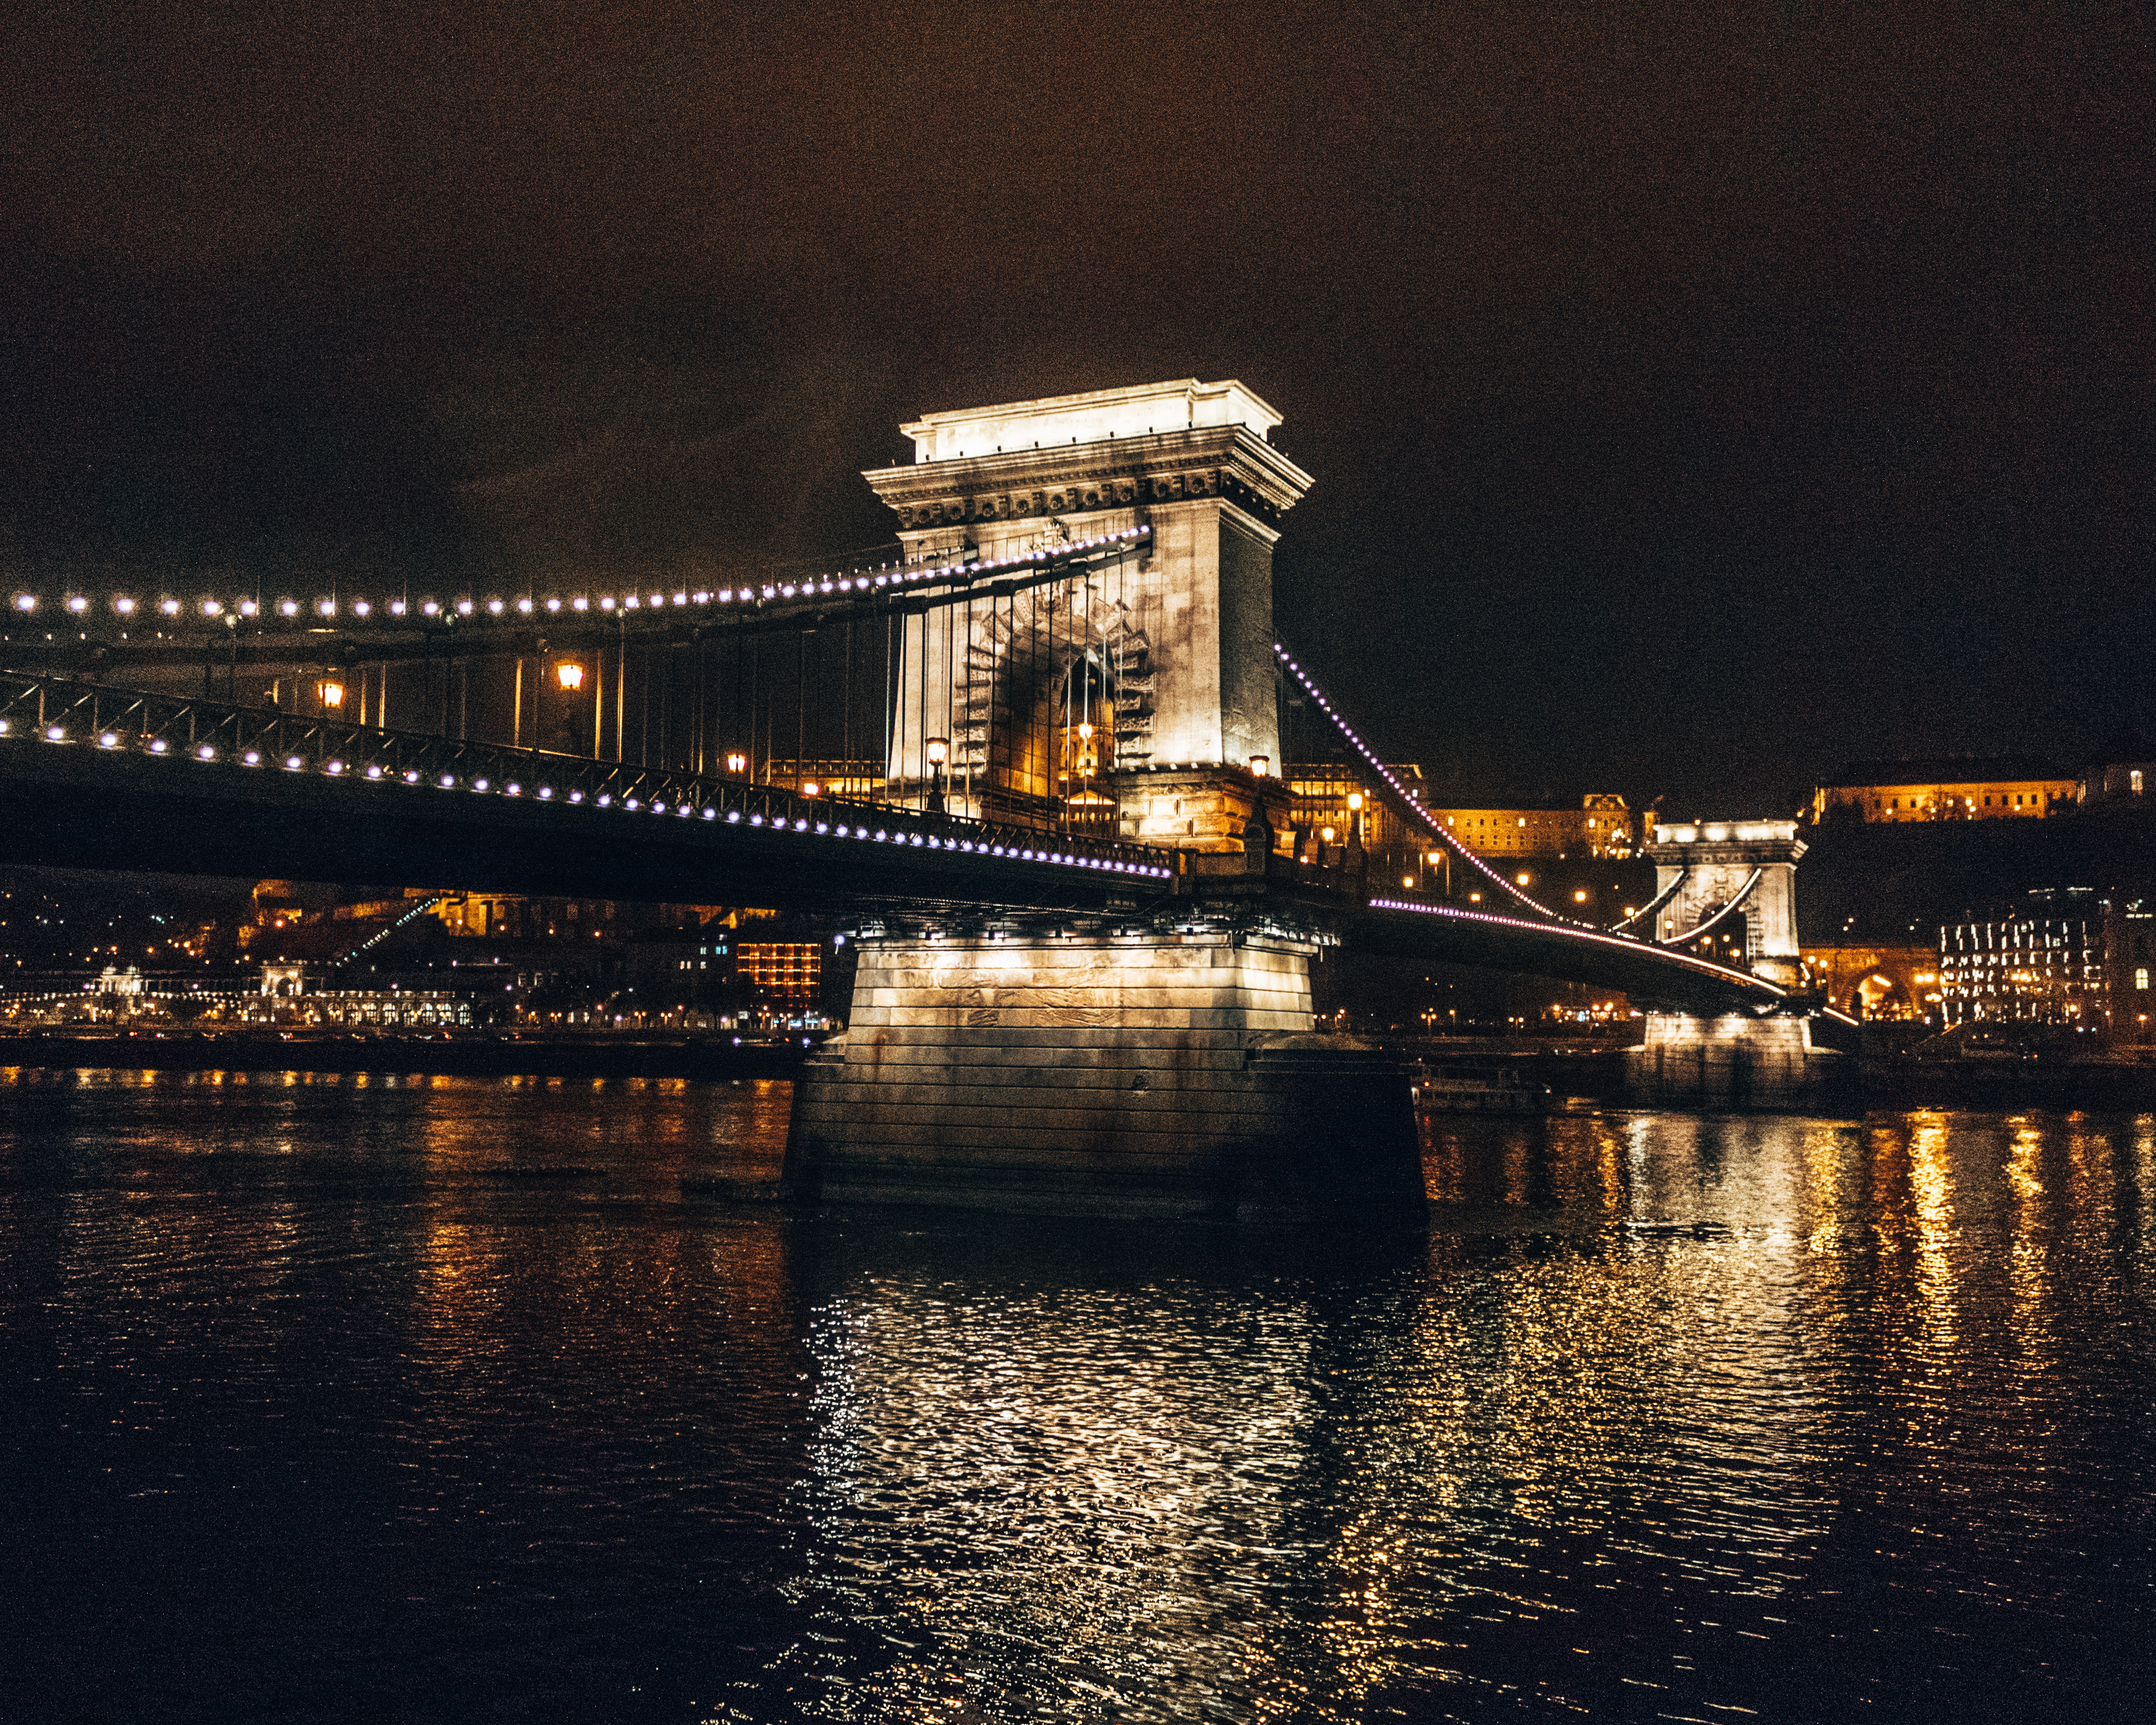 The famous Chain bridge lit up at night in Budapest, Hungary